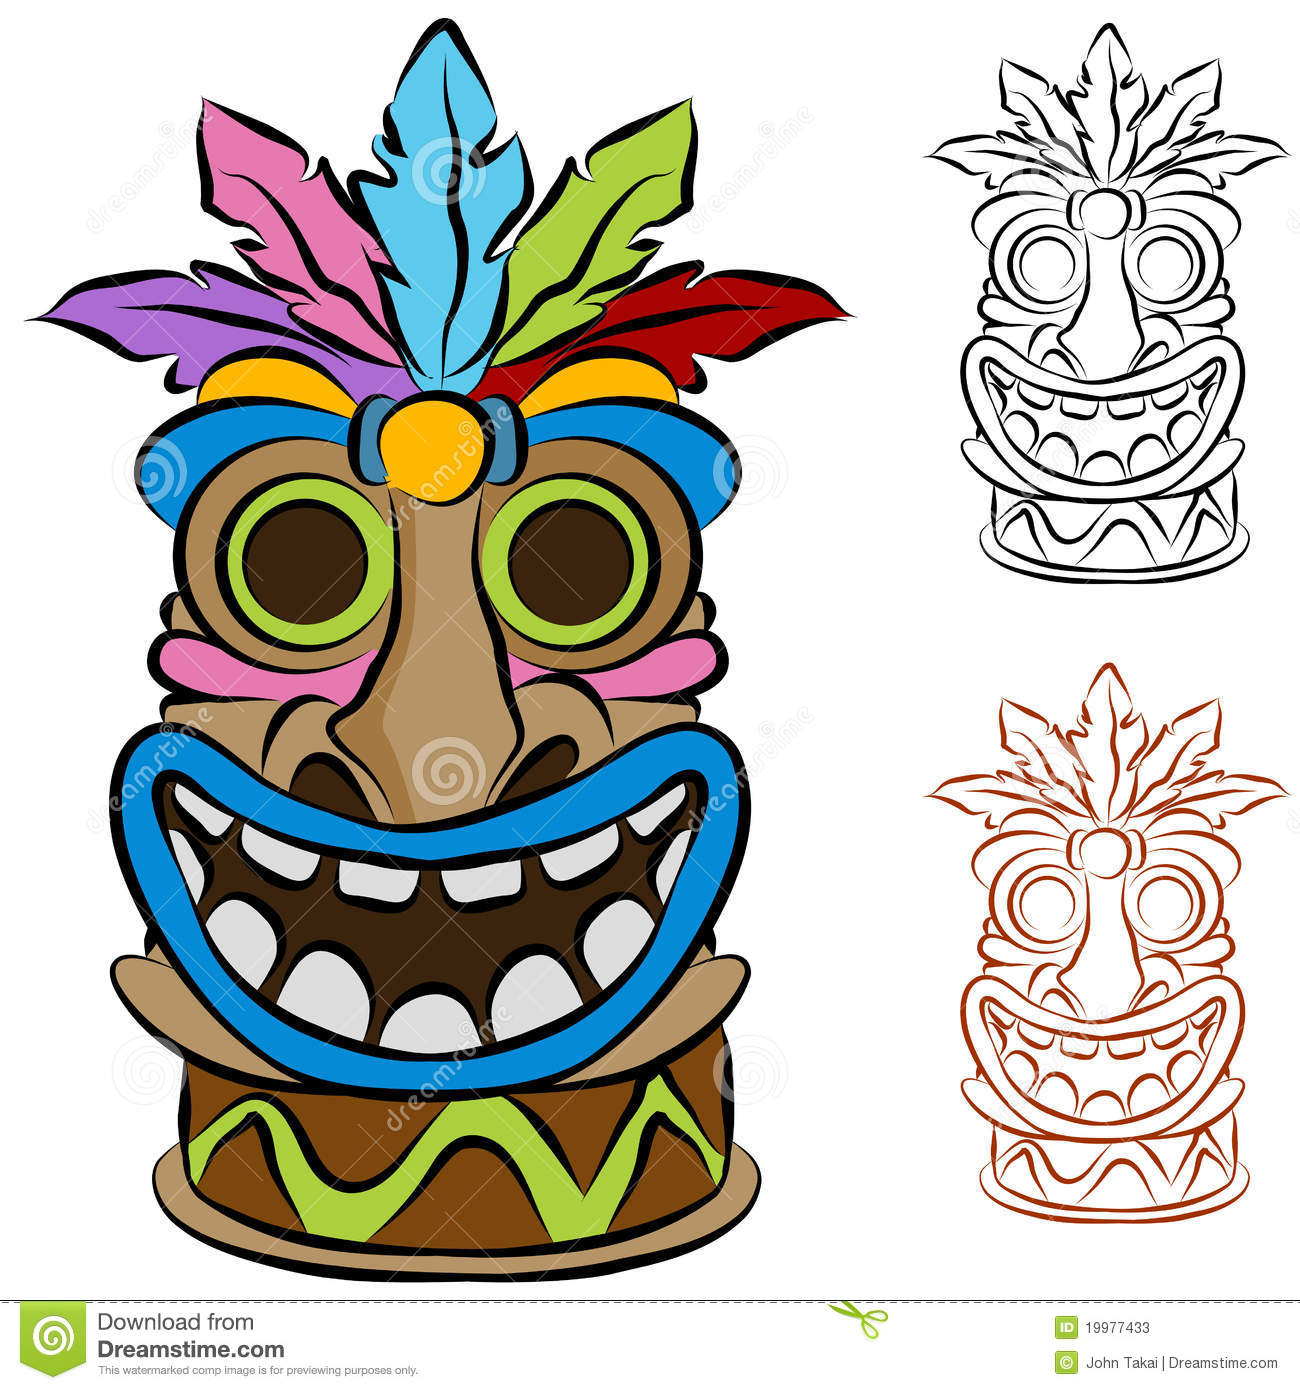 graphic about Tiki Mask Printable called Variety of Tiki clipart Free of charge down load great Tiki clipart